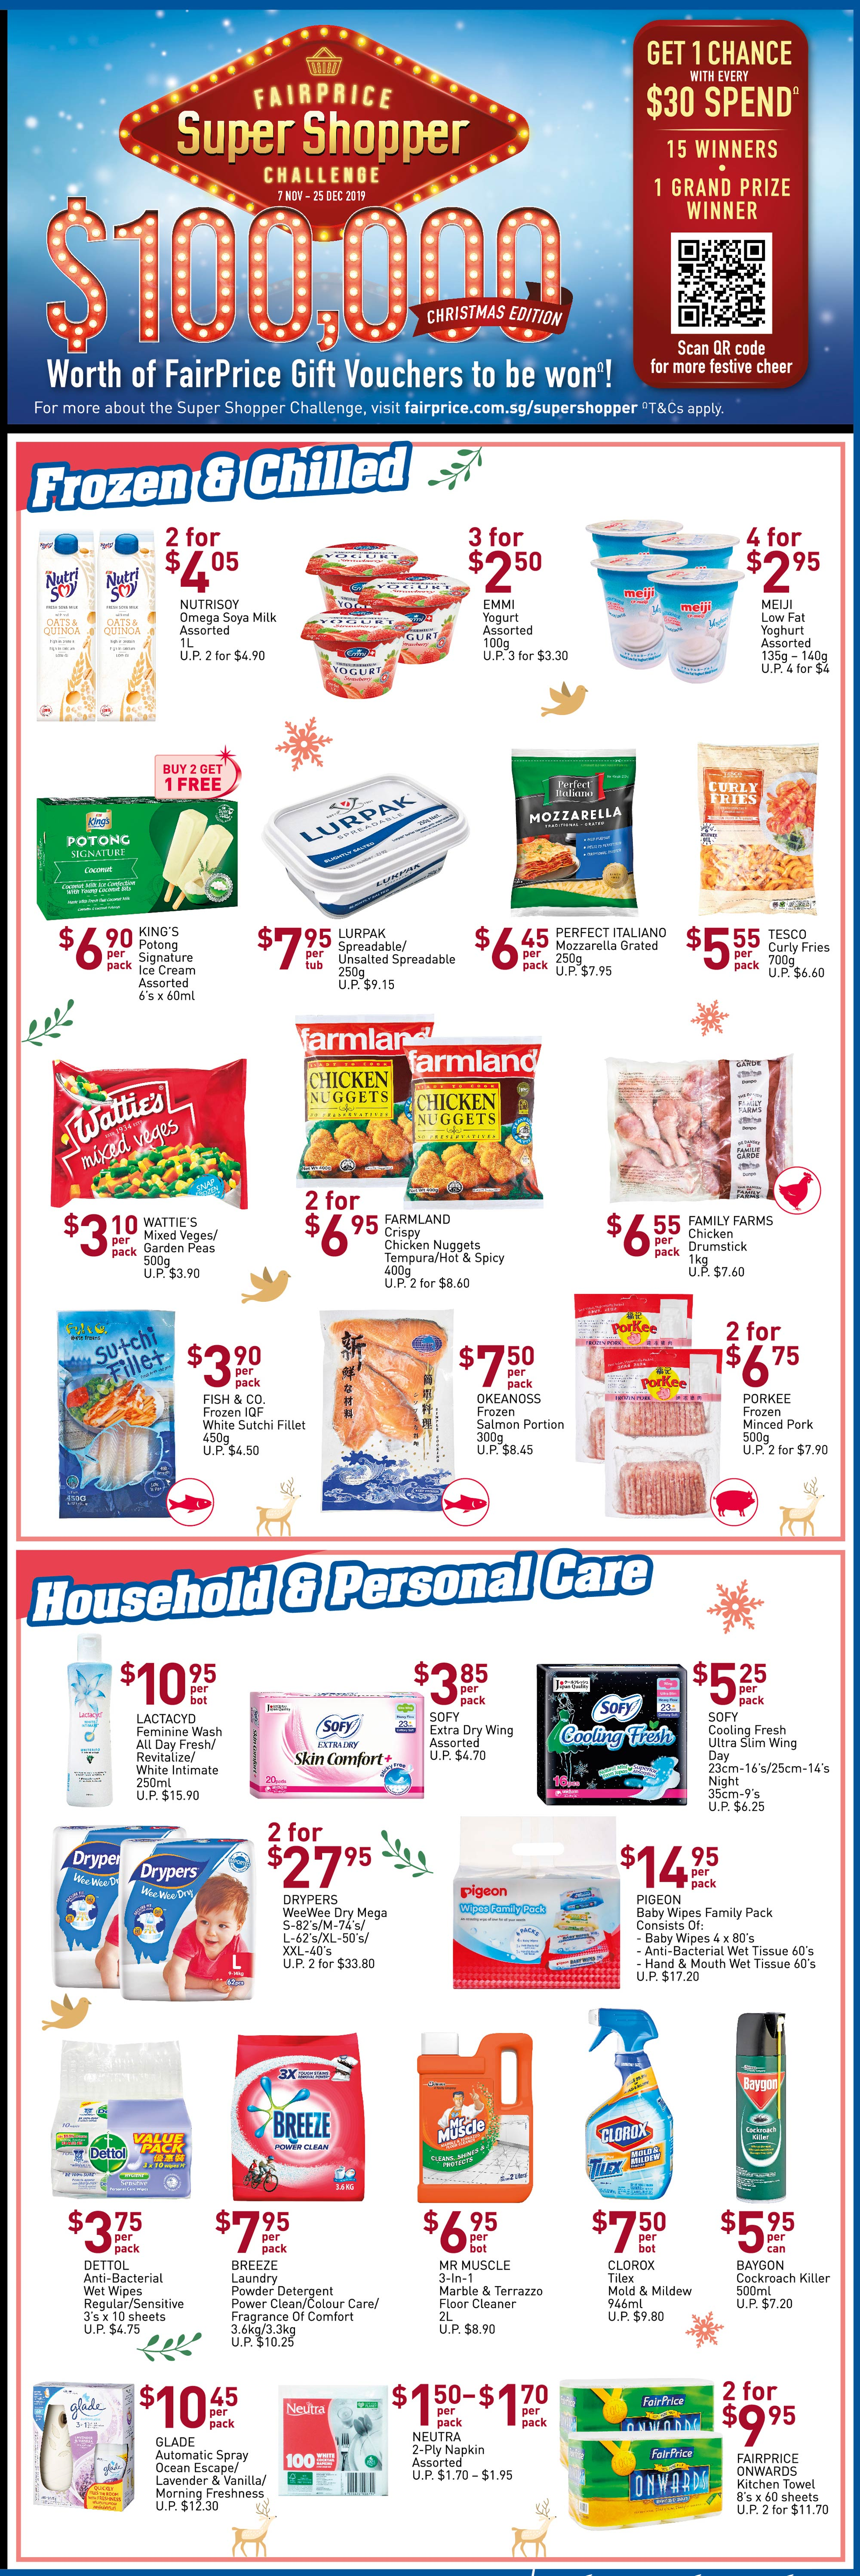 NTUC FairPrice Singapore Your Weekly Saver Promotions 7-13 Nov 2019   Why Not Deals 4 & Promotions